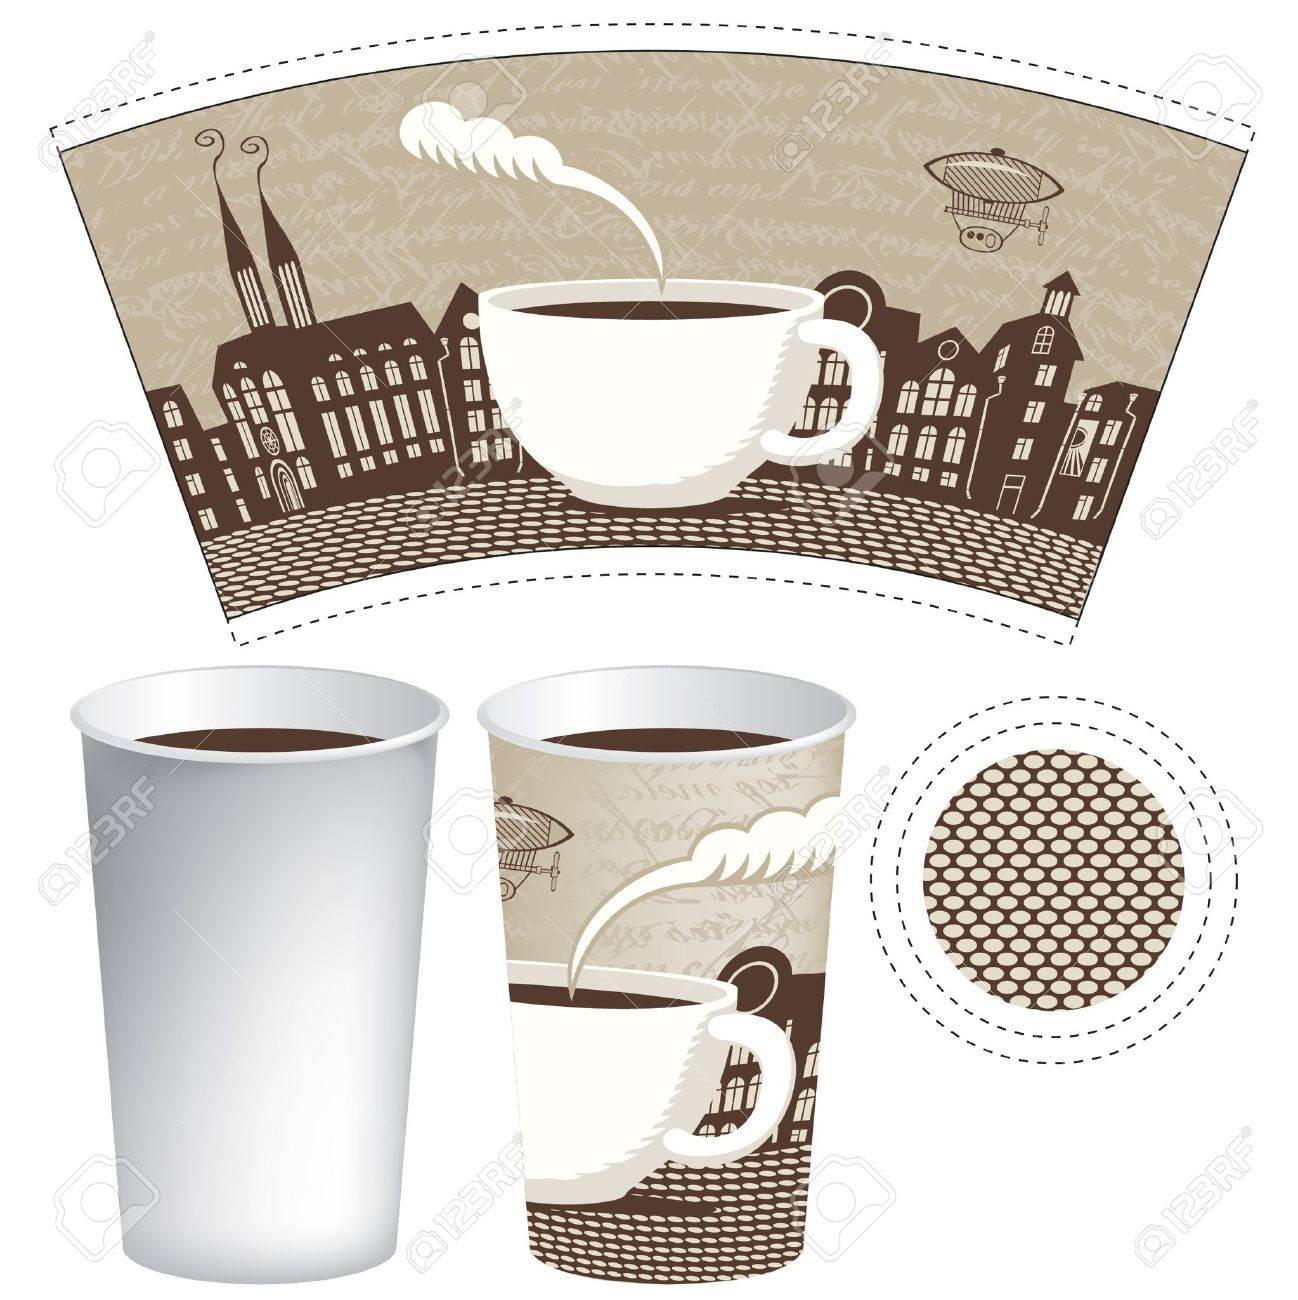 paper cup for tea or coffee with a picture of the old town - 18625123